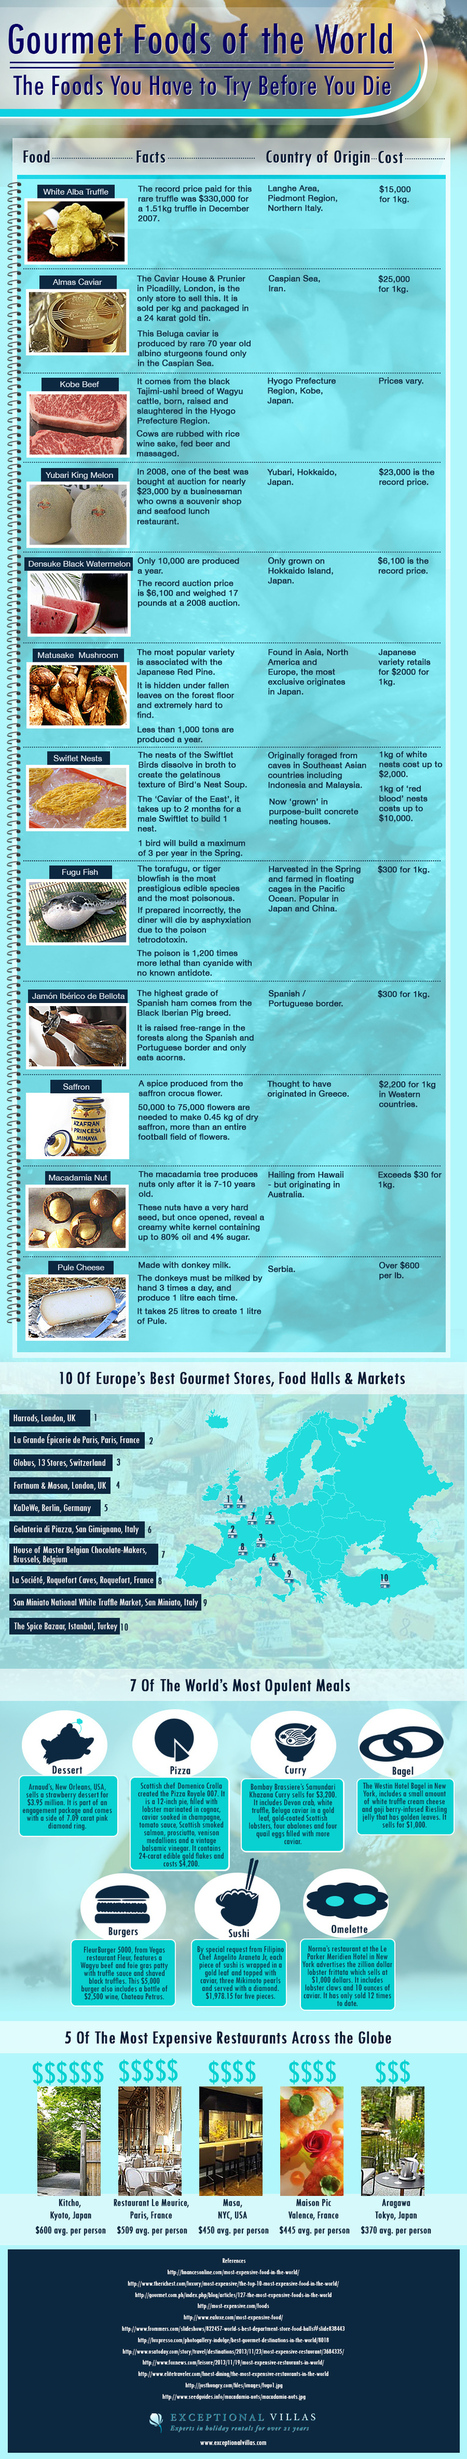 Gourmet Foods of the World - Infographic | hermesmyth | Scoop.it